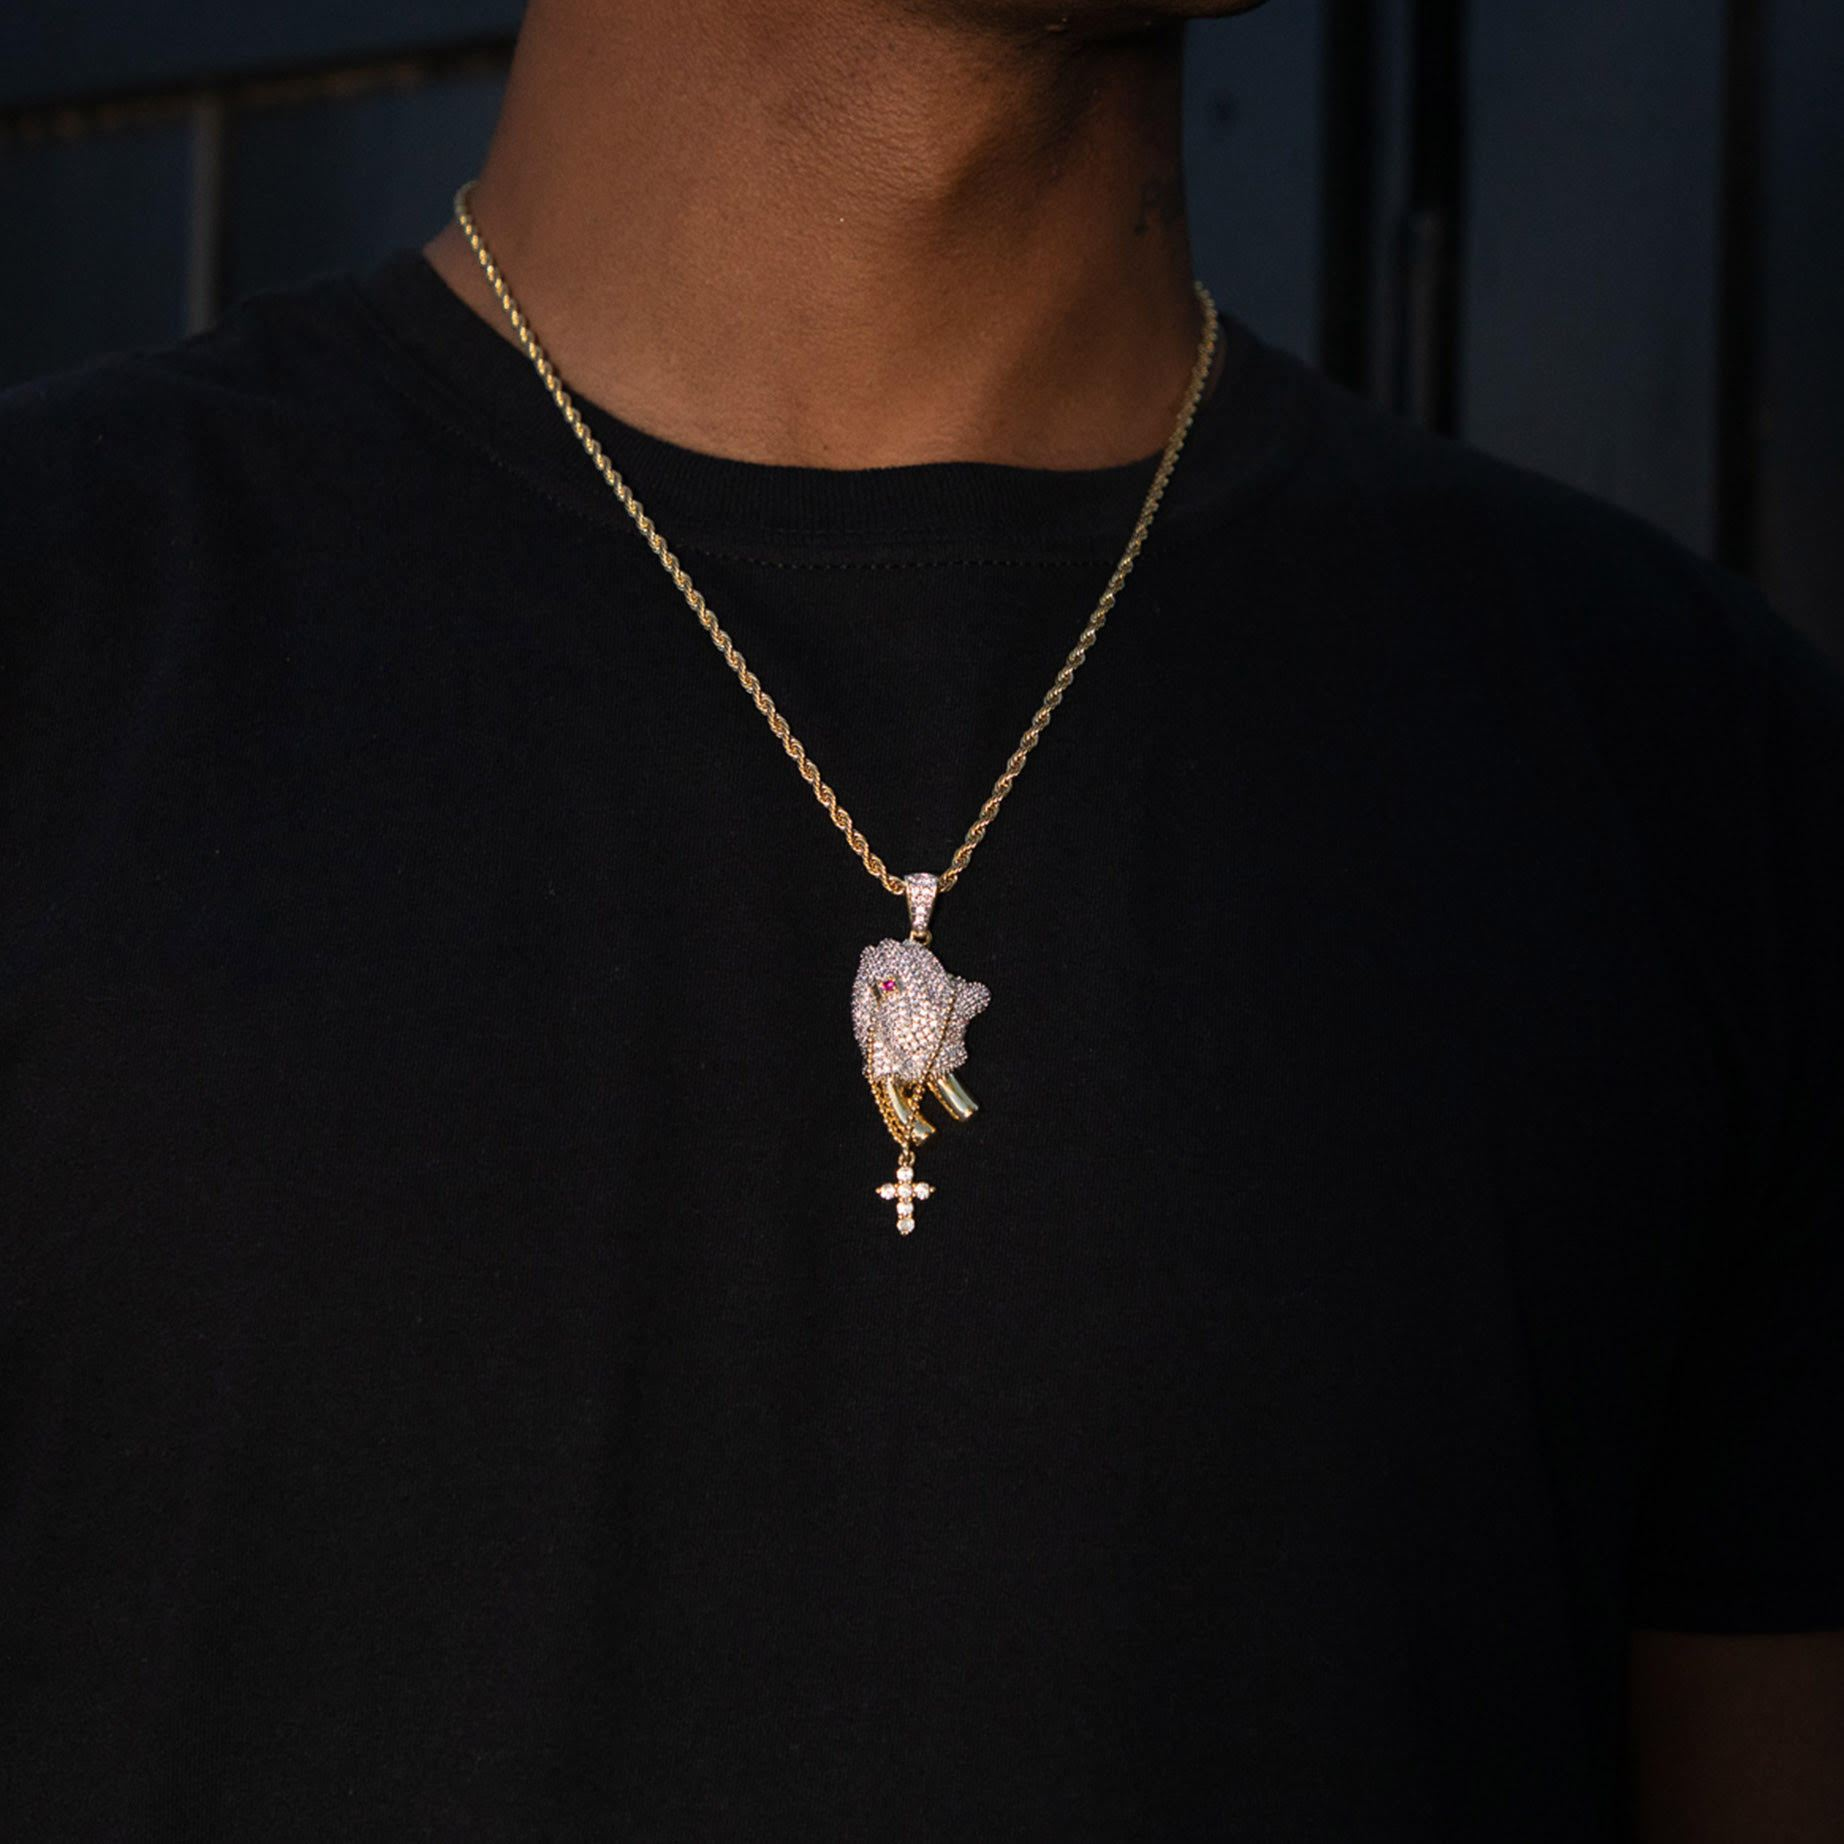 Iced Praying Hands Pendant - Got Drip - Jewelry - Ice - Jake Paul